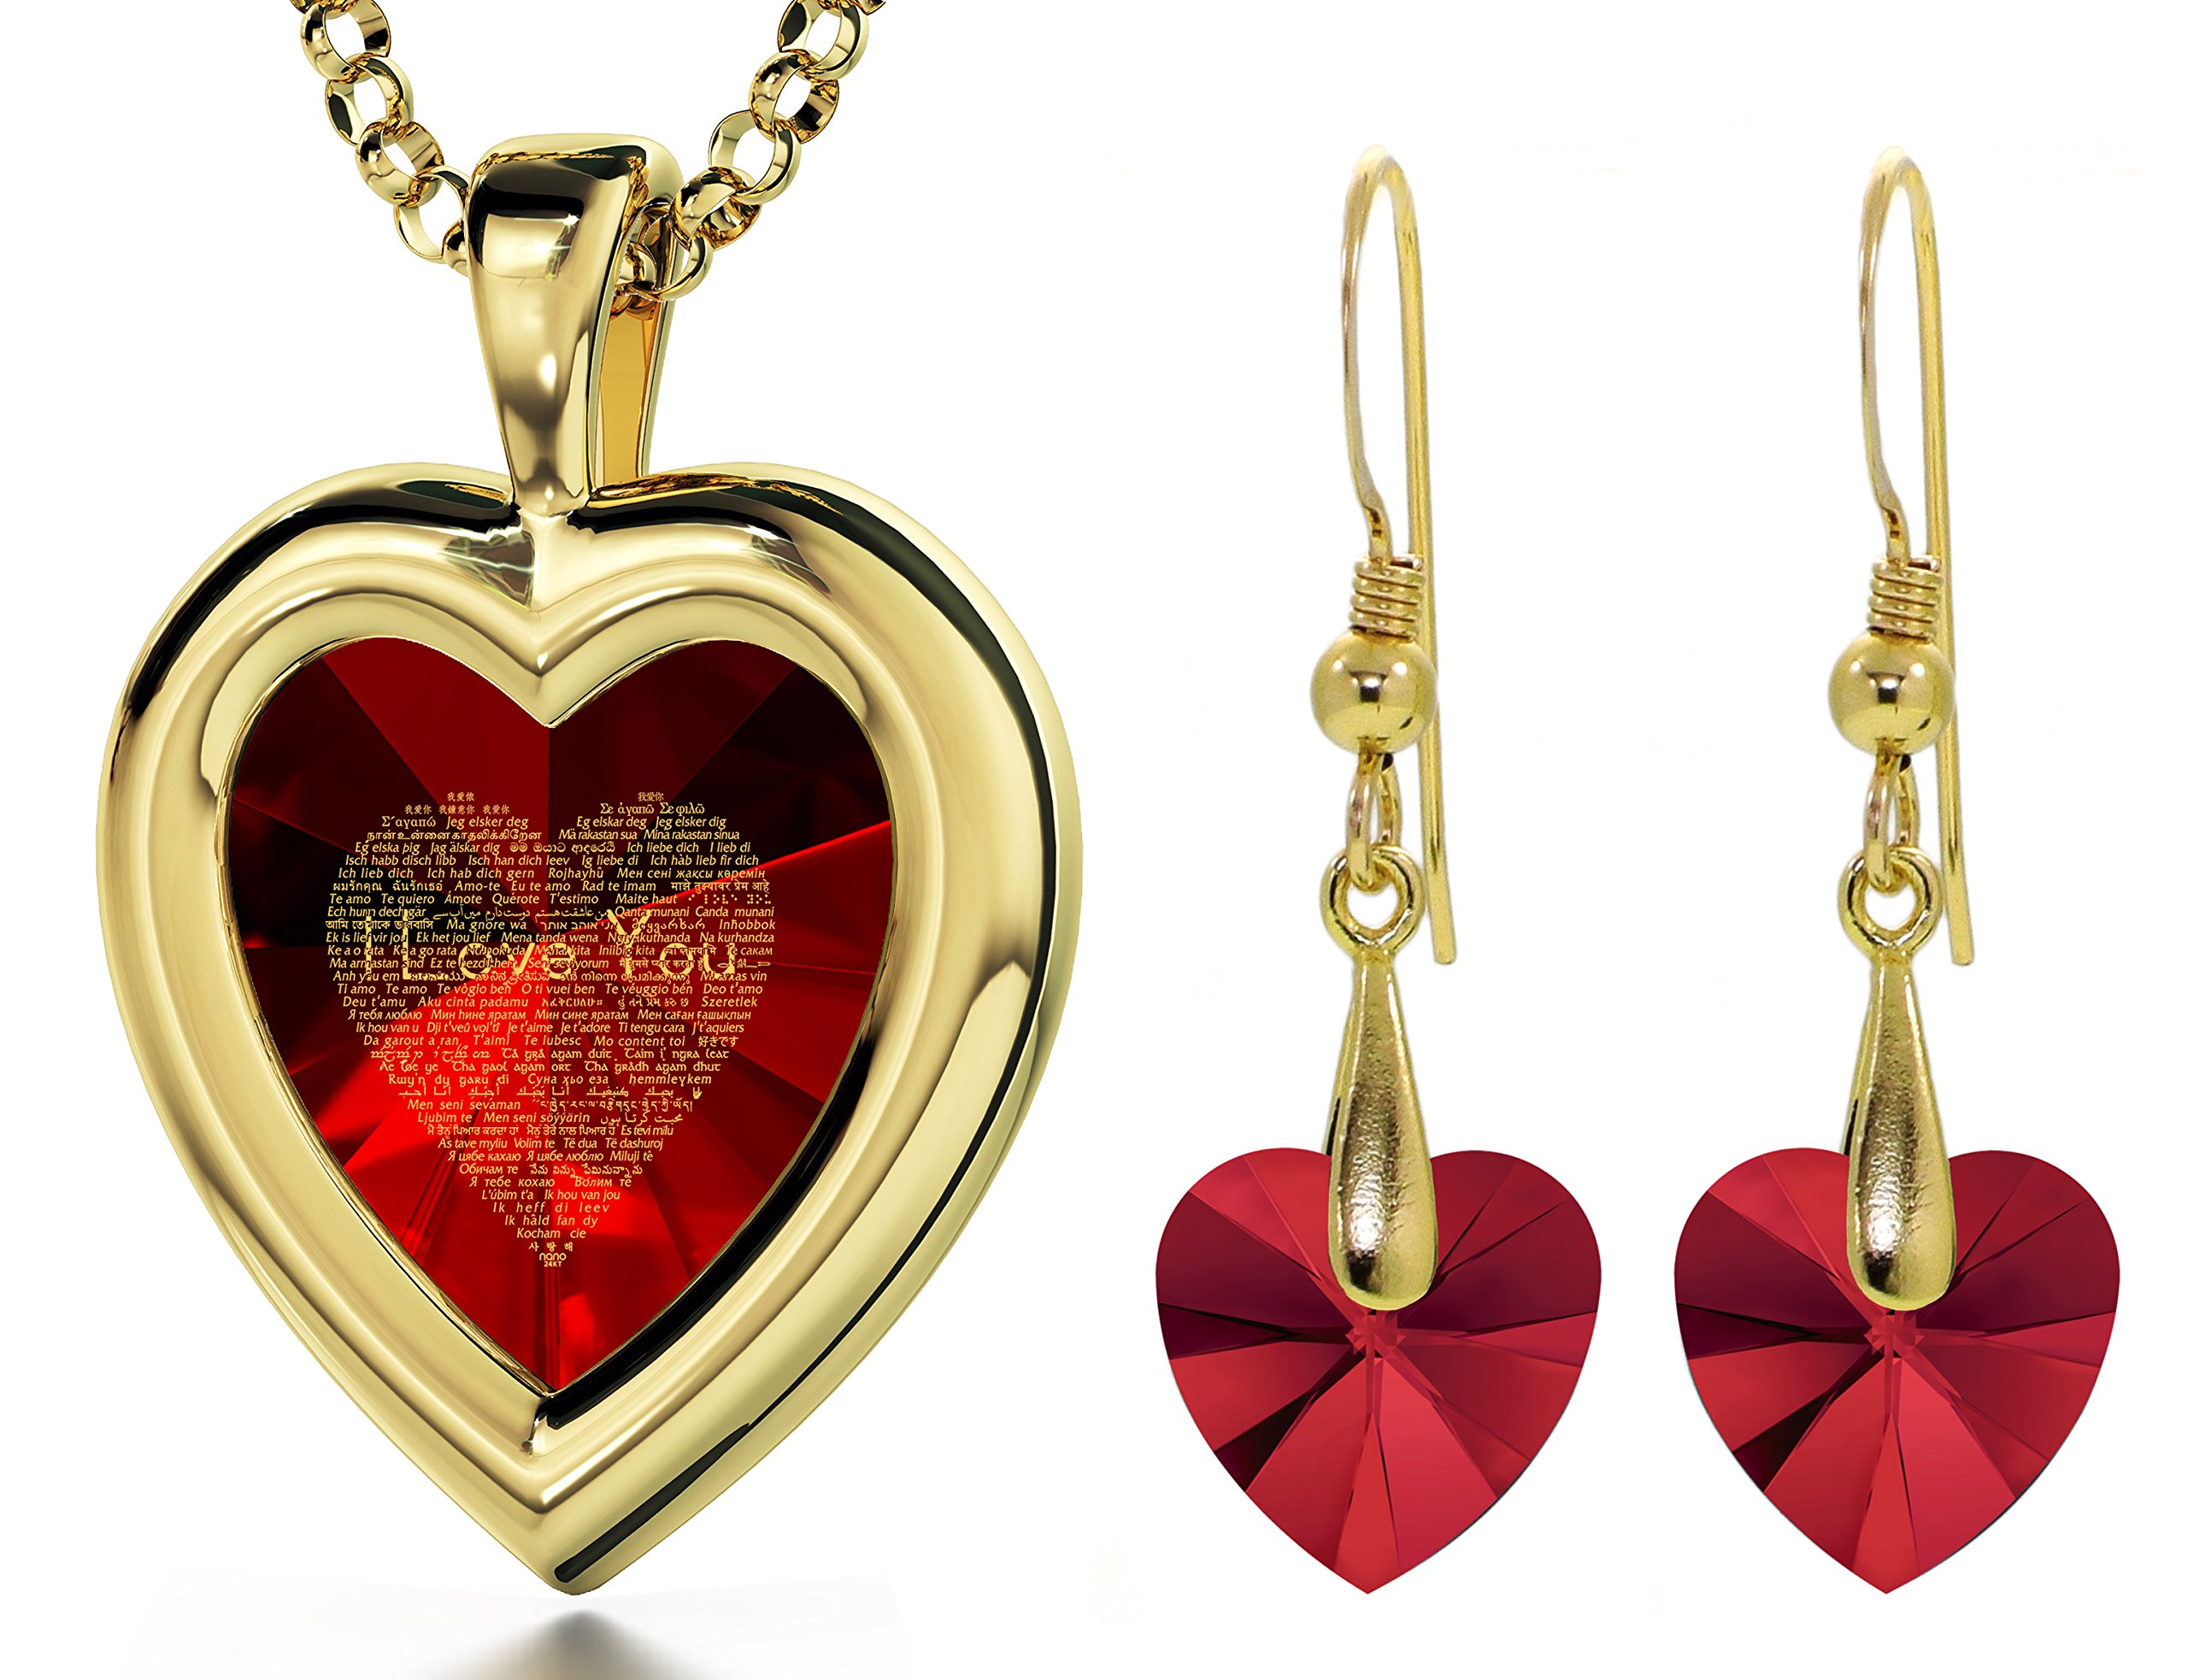 Gold Plated Red Heart Jewelry Set I Love You Necklace 120 Languages CZ Inscribed and Crystal Earrings by Nano Jewelry